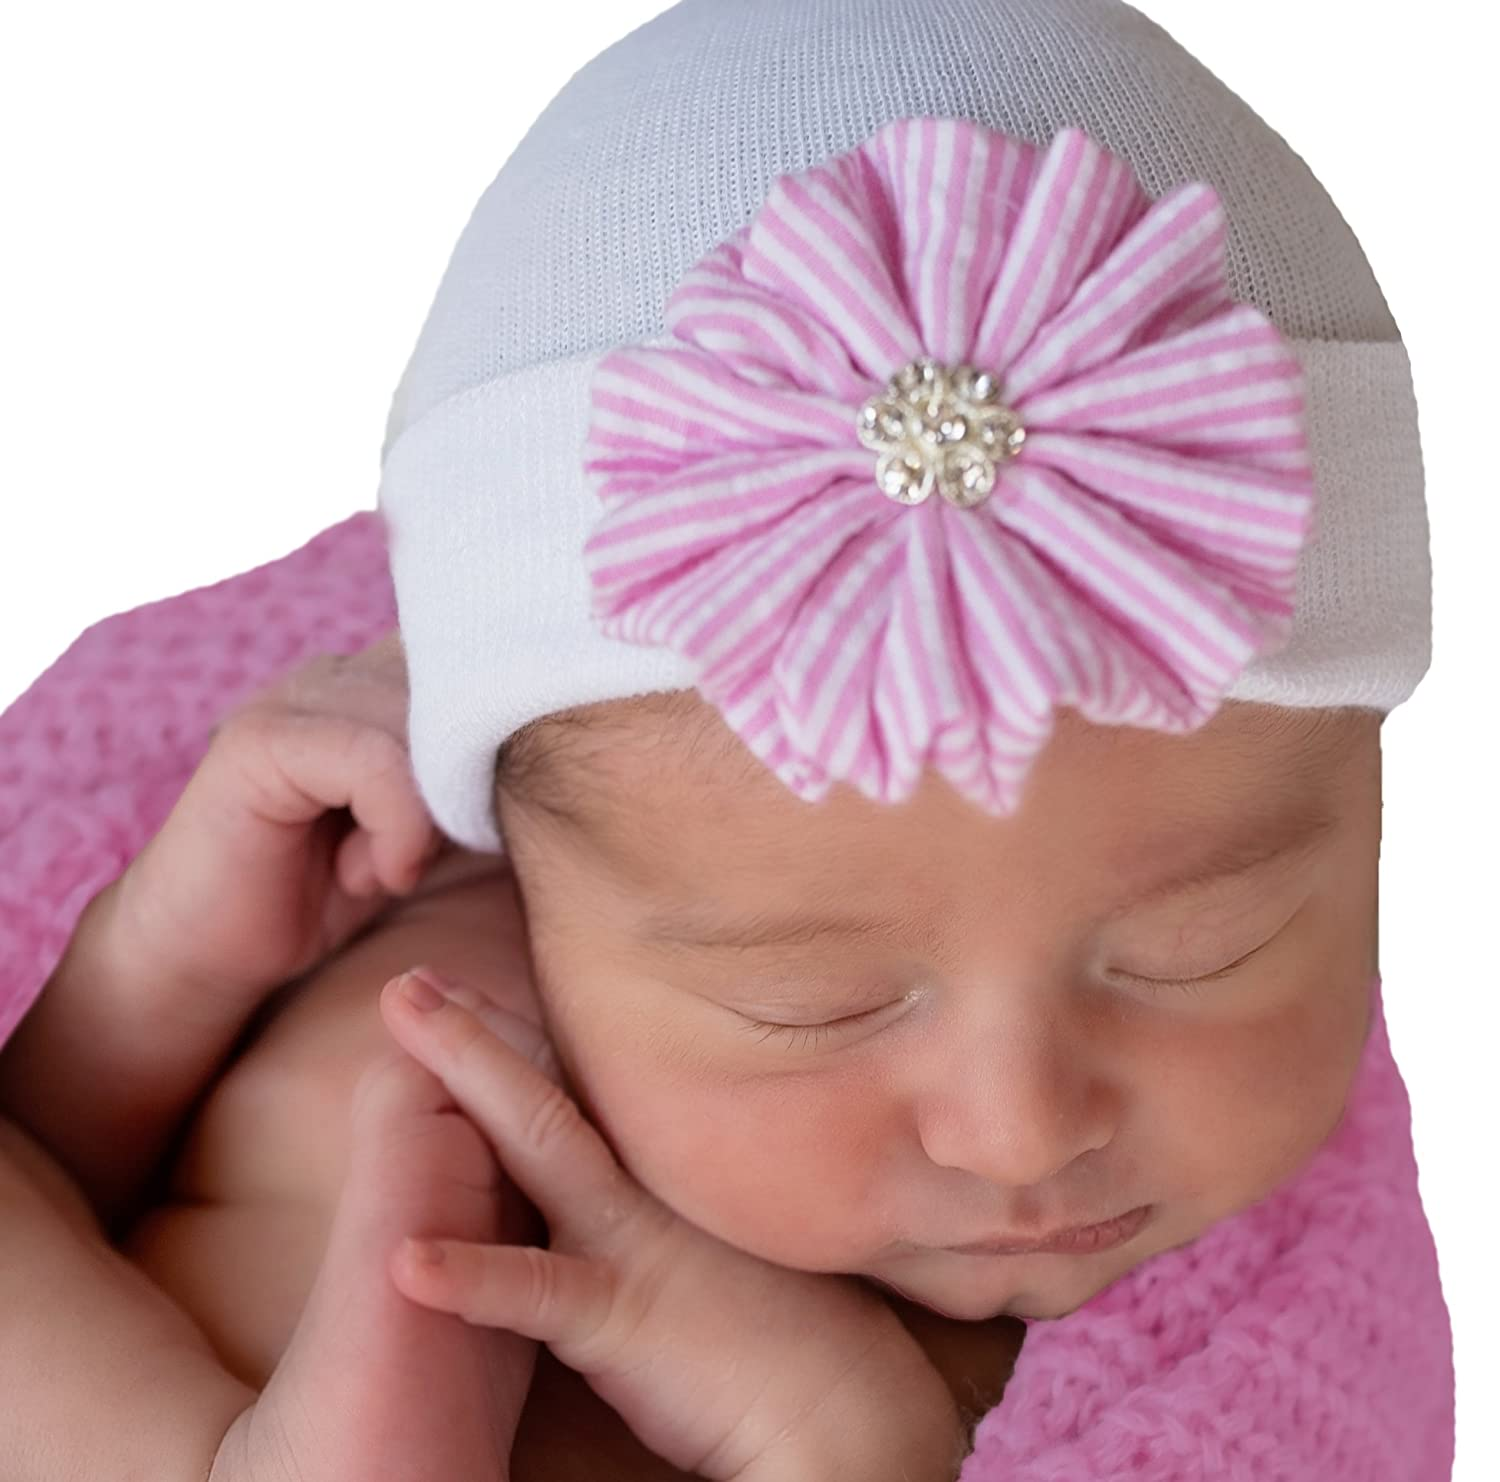 59a52c8974335 Melondipity Weet Seersucker Pink and White Striped Hand Crafted Flower  Newborn Girl Hospital Hat - Nursery Beanie  Amazon.ca  Clothing    Accessories